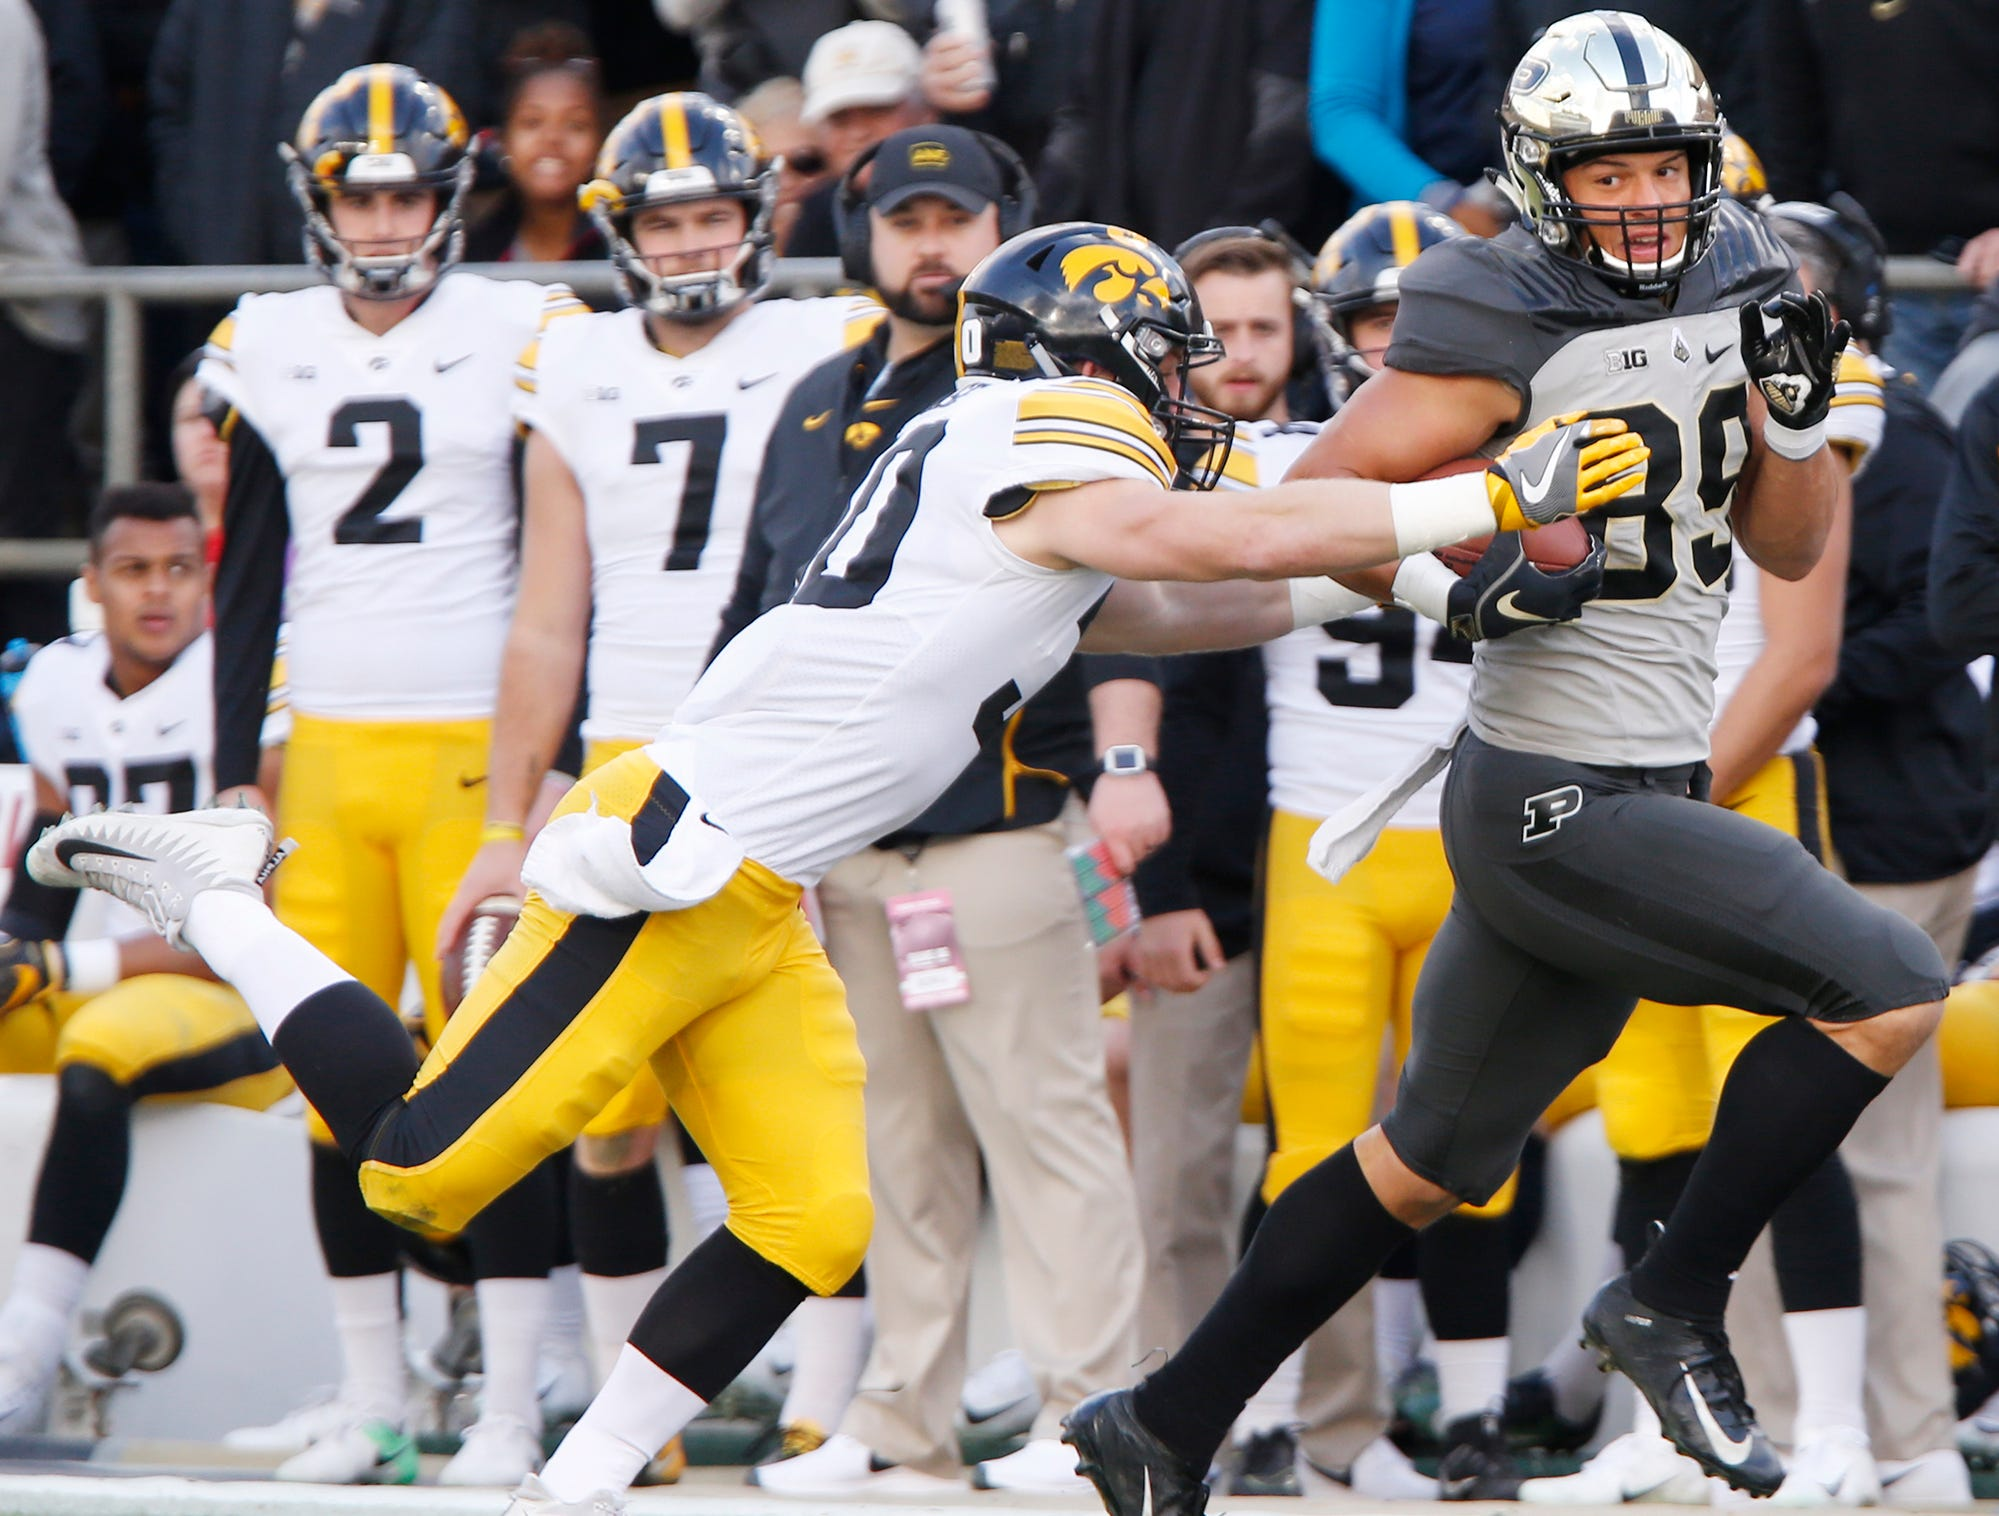 Purdue tight end Brycen Hopkins with a pass reception in the first half against Iowa Saturday, November 3, 2018, at Ross-Ade Stadium. Purdue defeated Iowa 38-36.